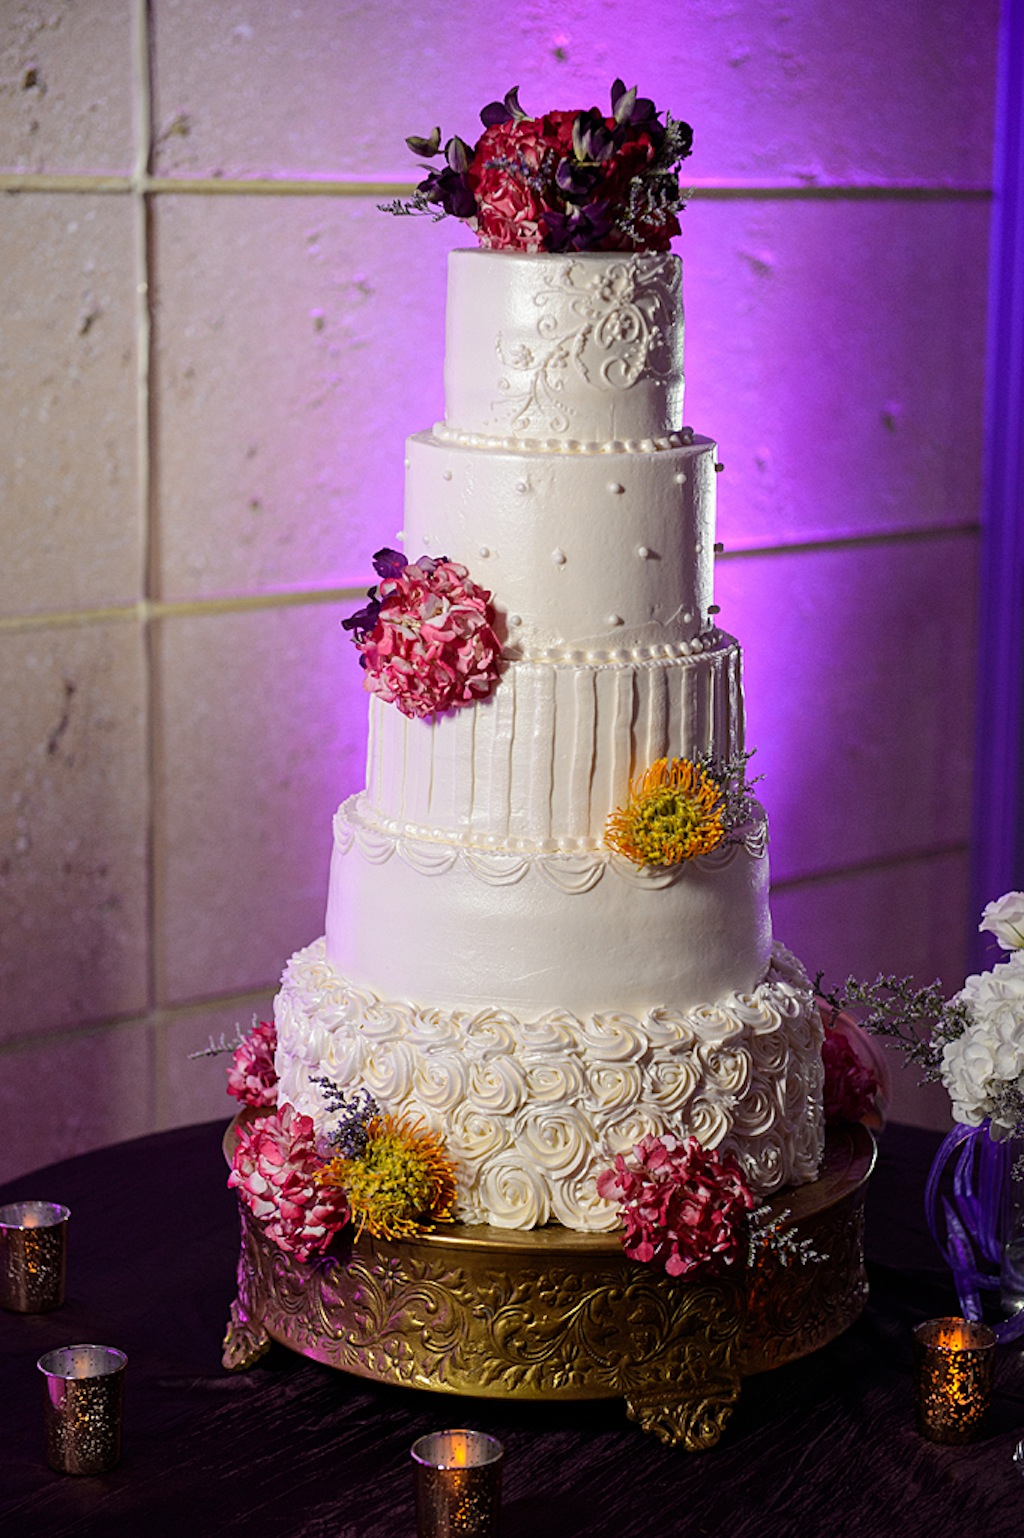 5-Tier White Round Traditional Wedding Cake with Pink Flowers